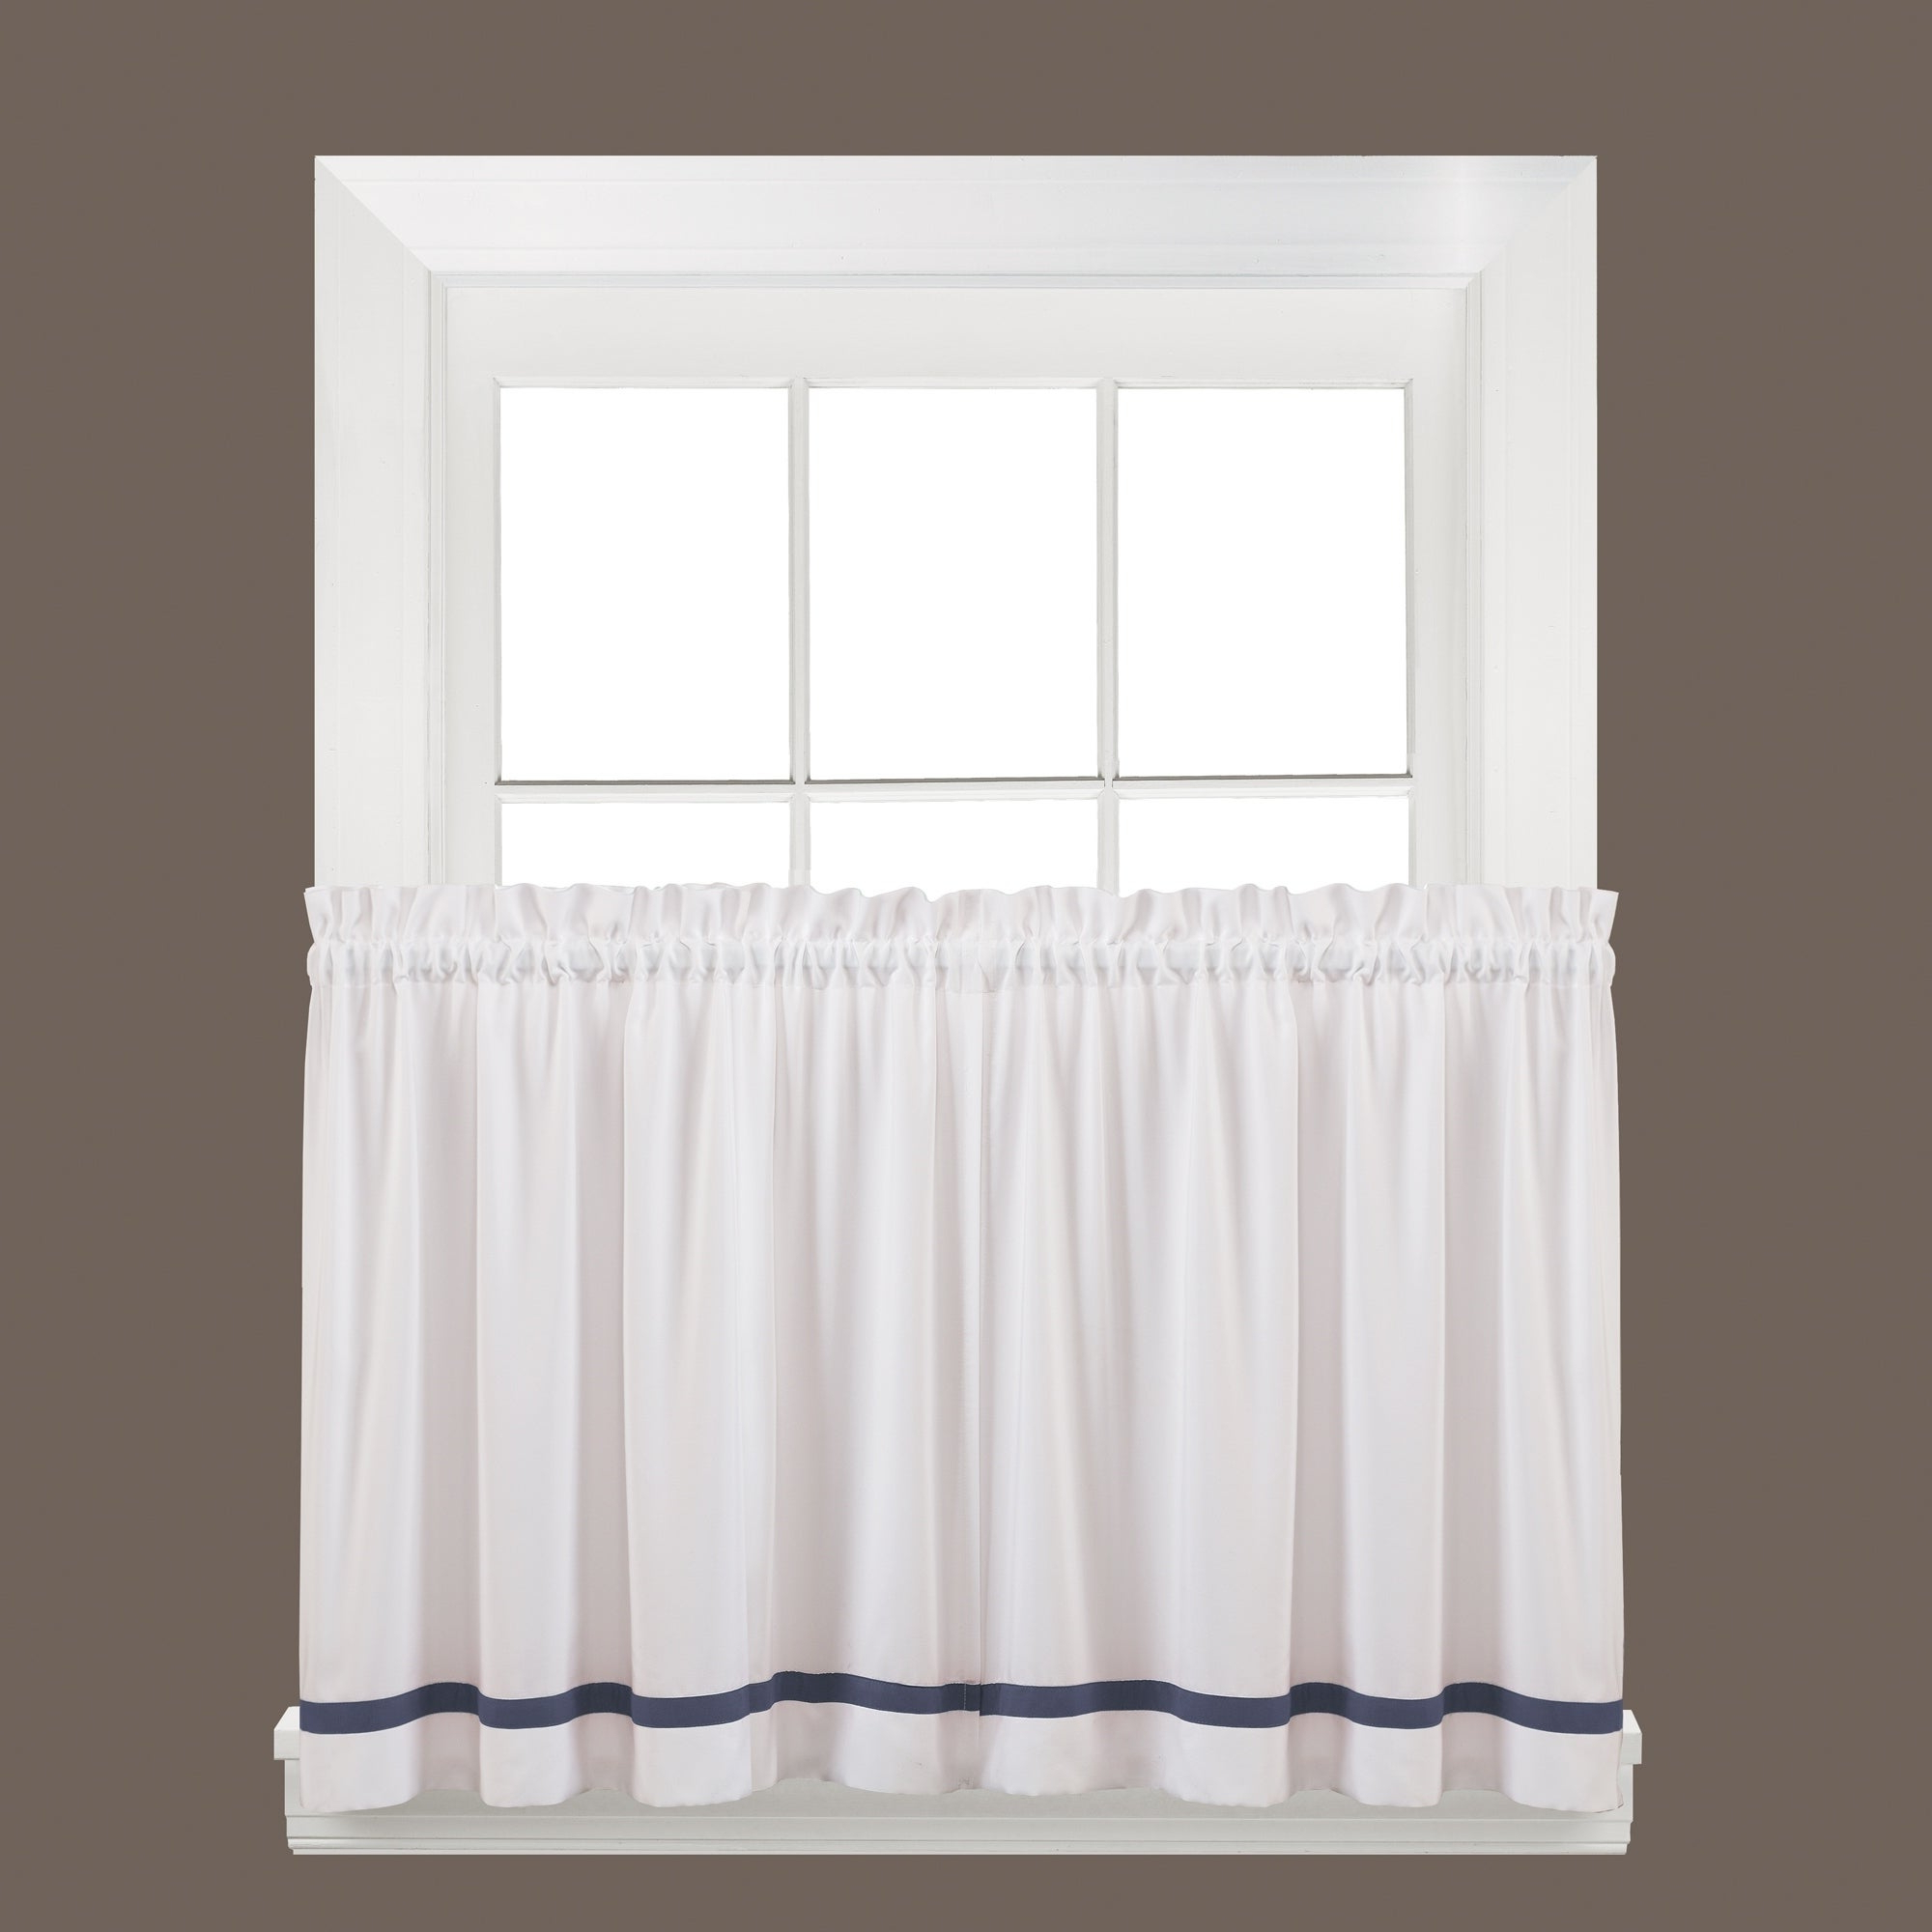 2020 Forest Valance And Tier Pair Curtains Inside Details About Skl Home Kate 36 Inch Tier Pair In Blue Blue (View 11 of 20)